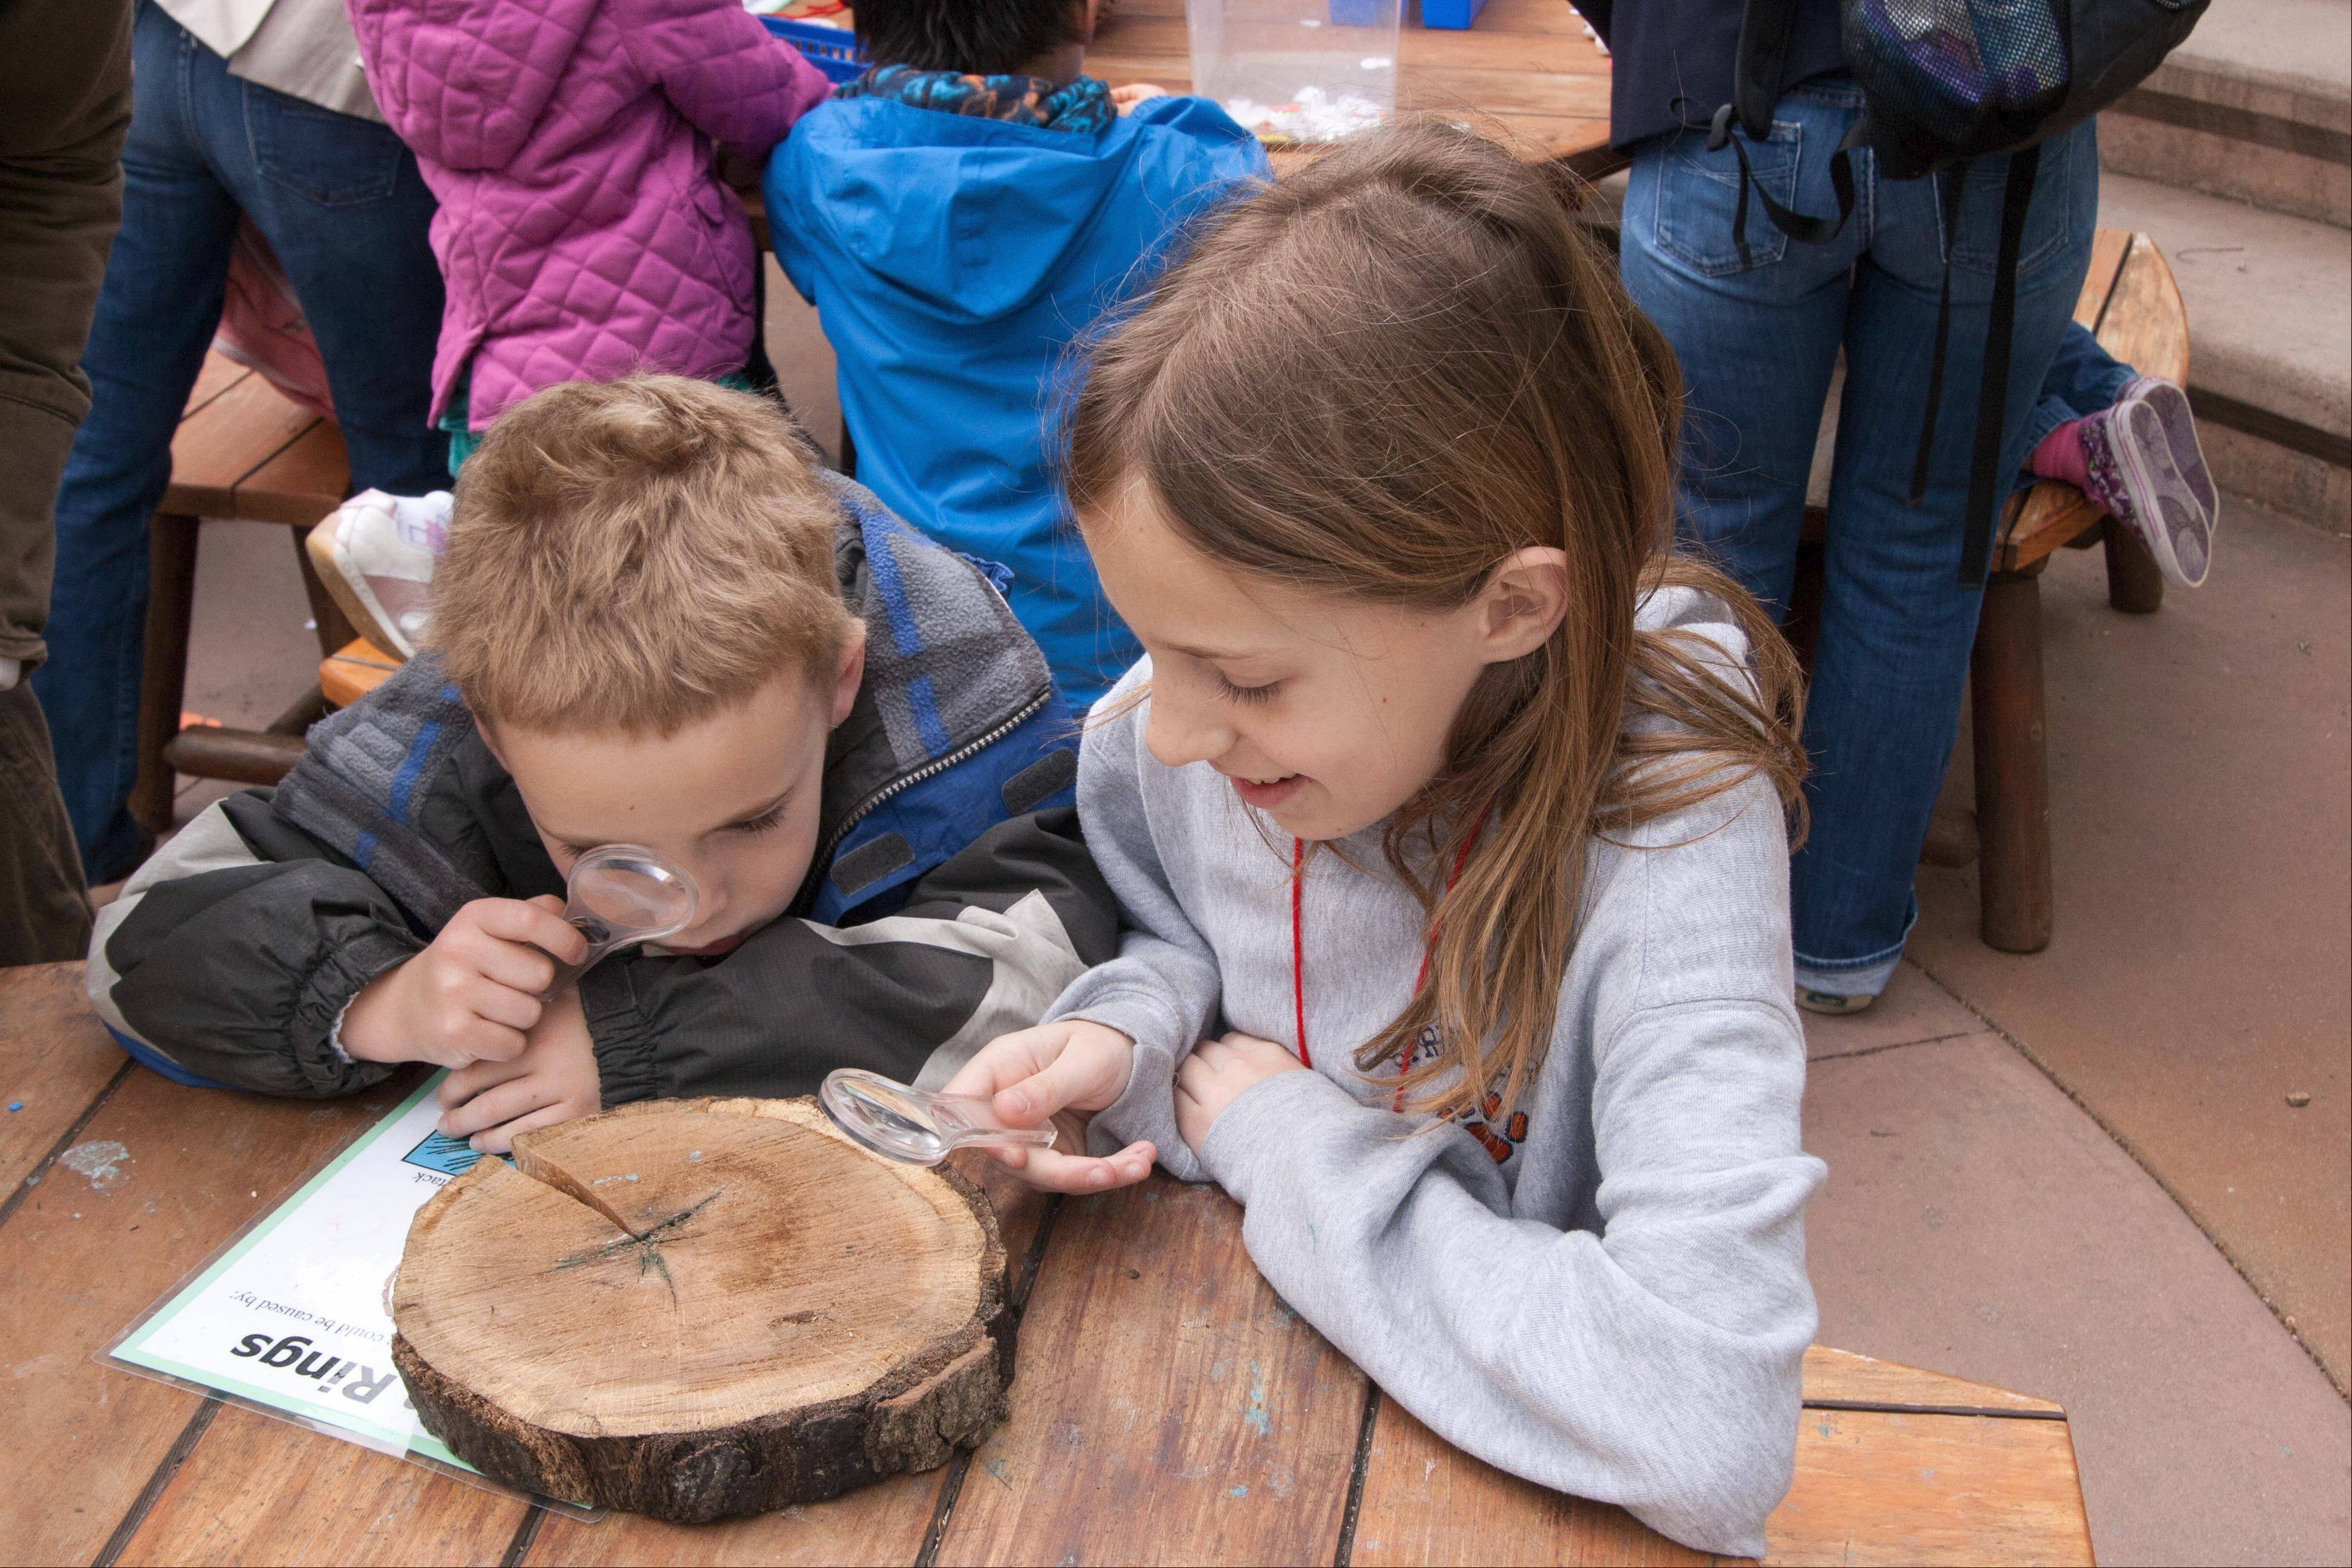 Young visitors can study trees as part of special Earth Day programs at Morton Arboretum in Lisle.